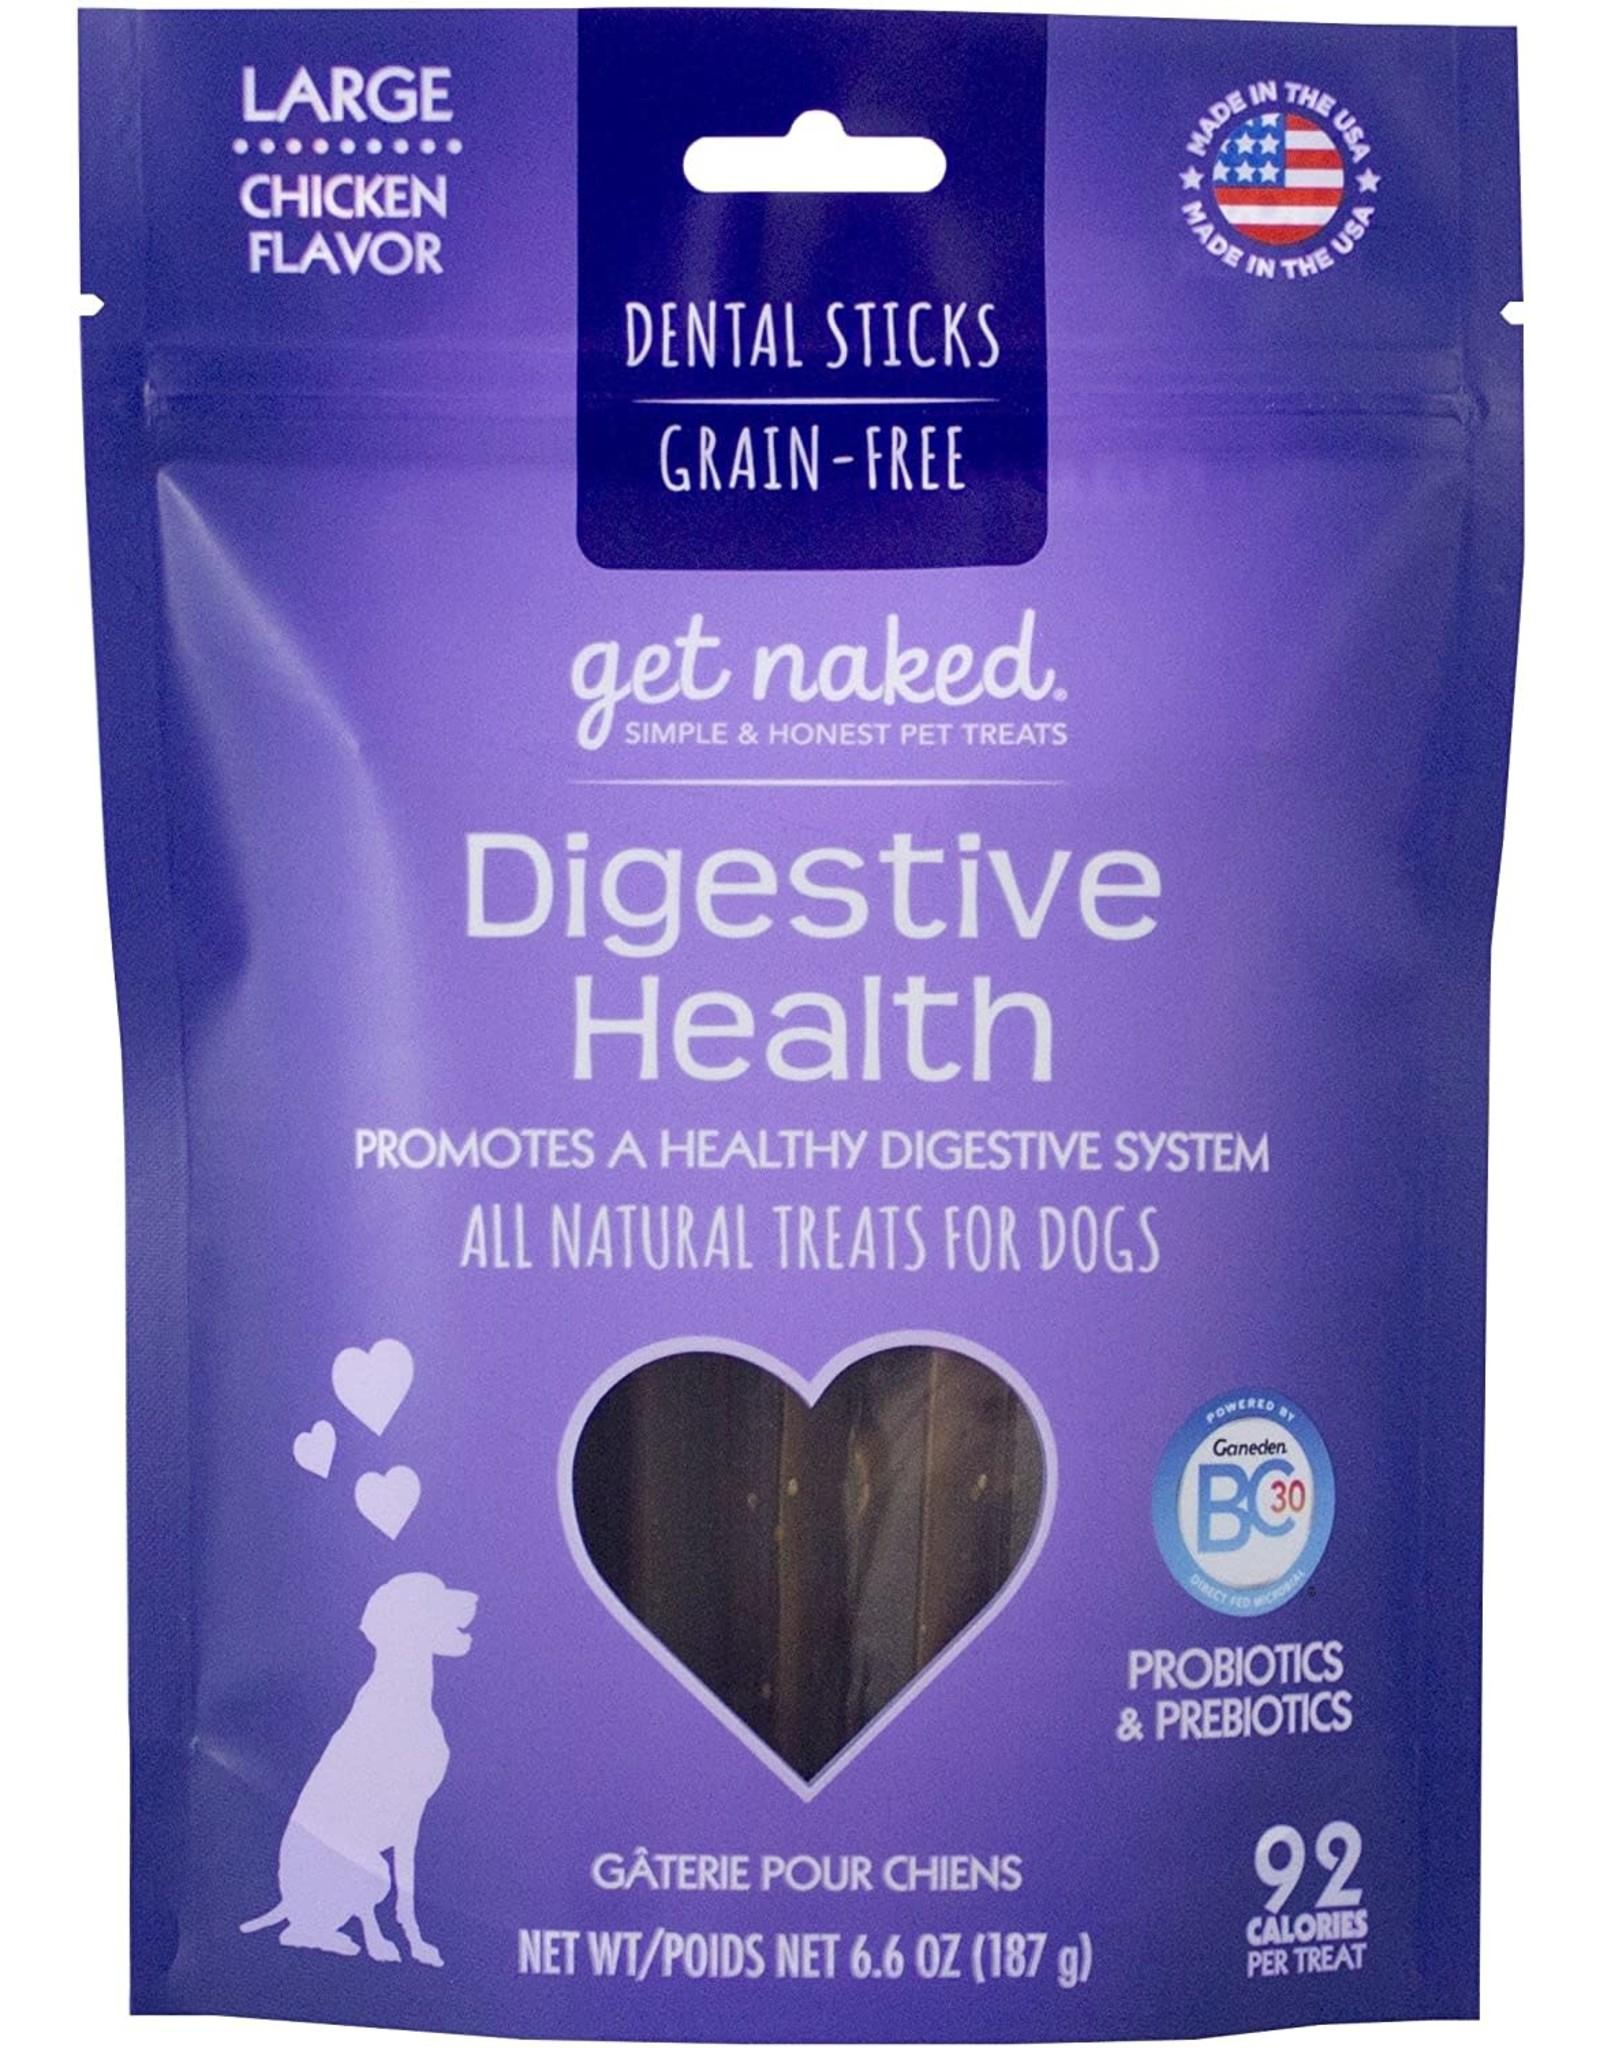 Get Naked Digestive Health LARGE Dental Bones